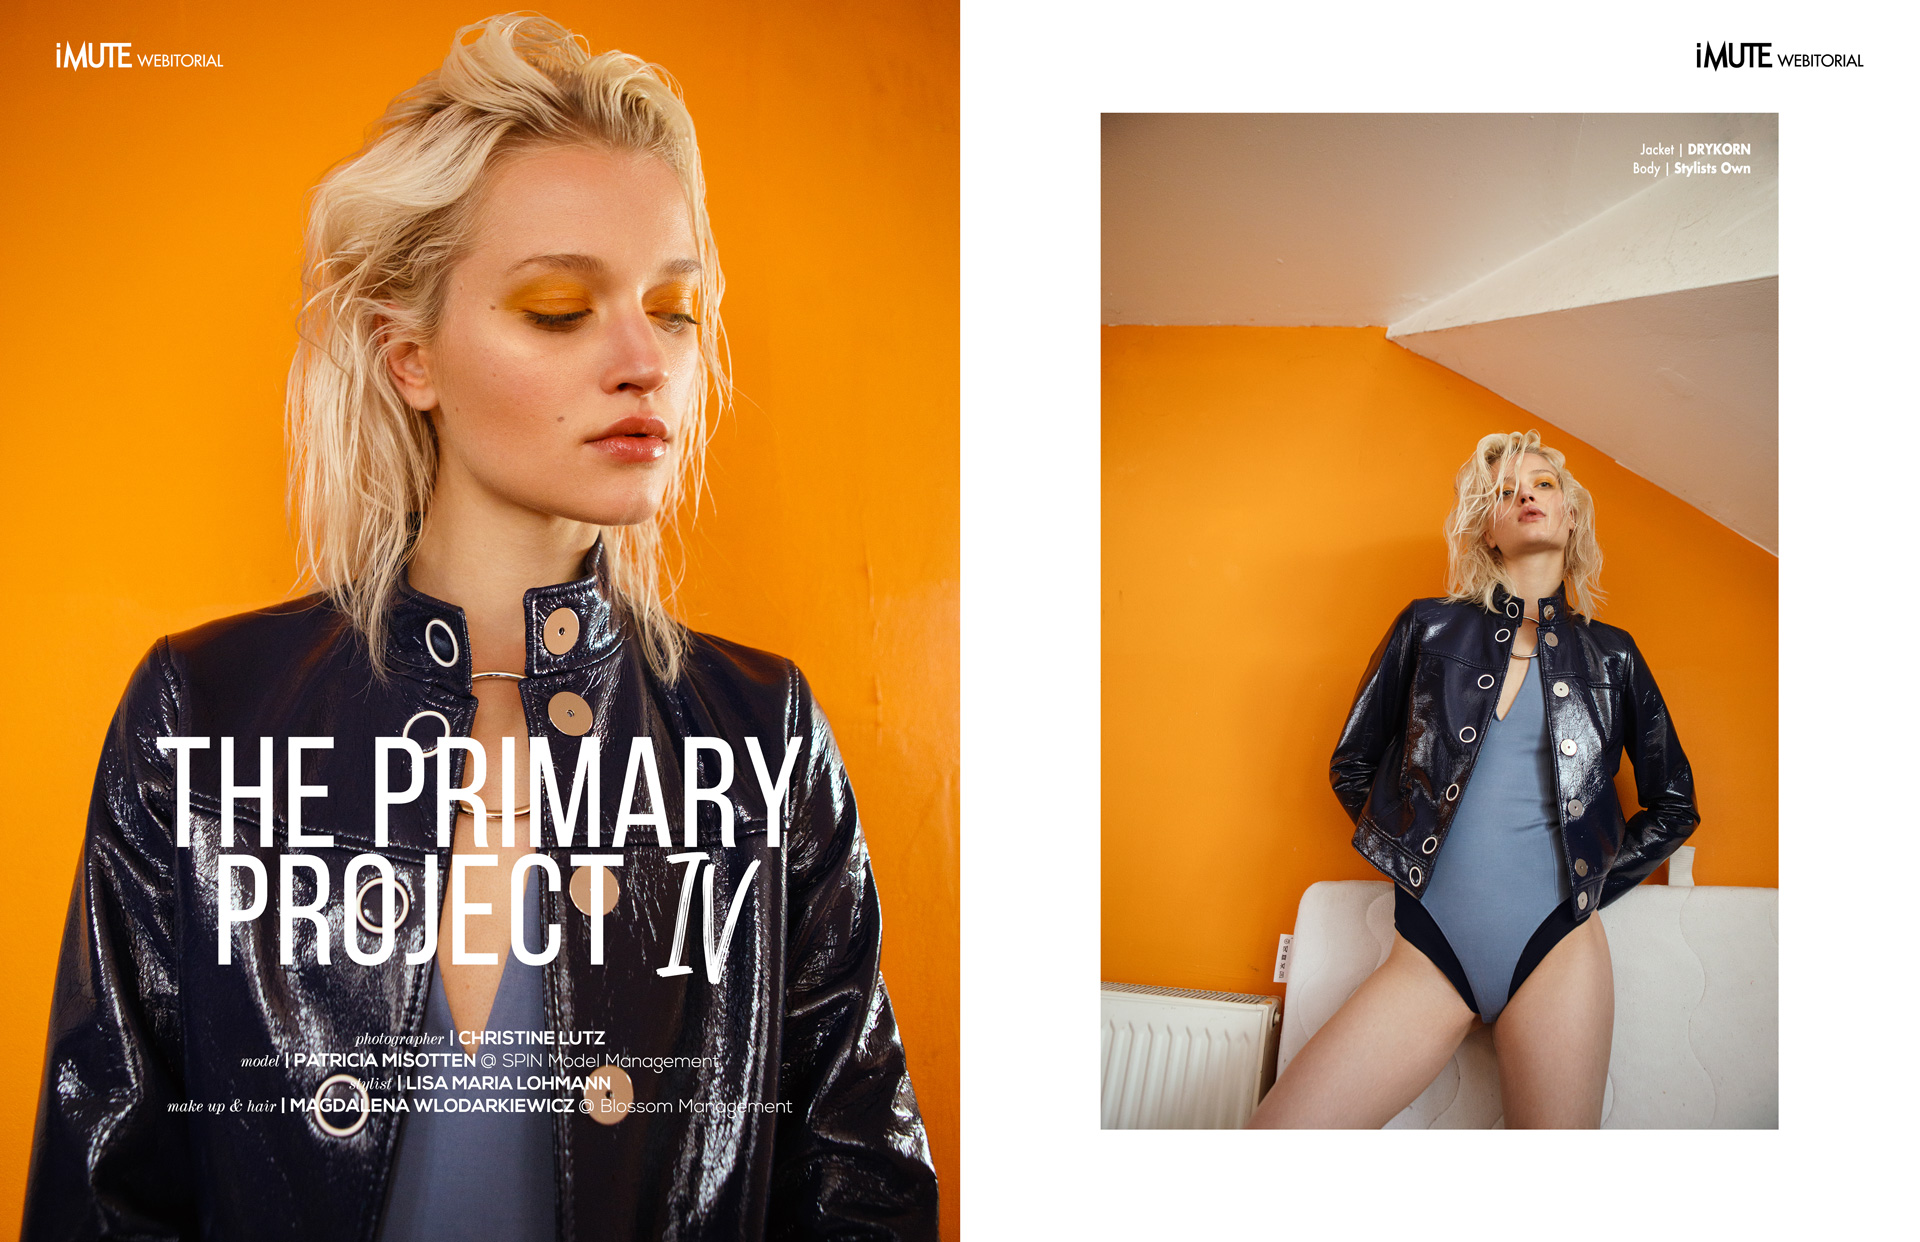 THE PRIMARY PROJECT IV webitorial for iMute Magazine Photographer|CHRISTINE LUTZ Model| PATRICIA MISOTTEN @SPIN Model Management Stylist|LISA MARIA LOHMANN Makeup & Hair|MAGDALENA WLODARKIEWICZ @ Blossom Management